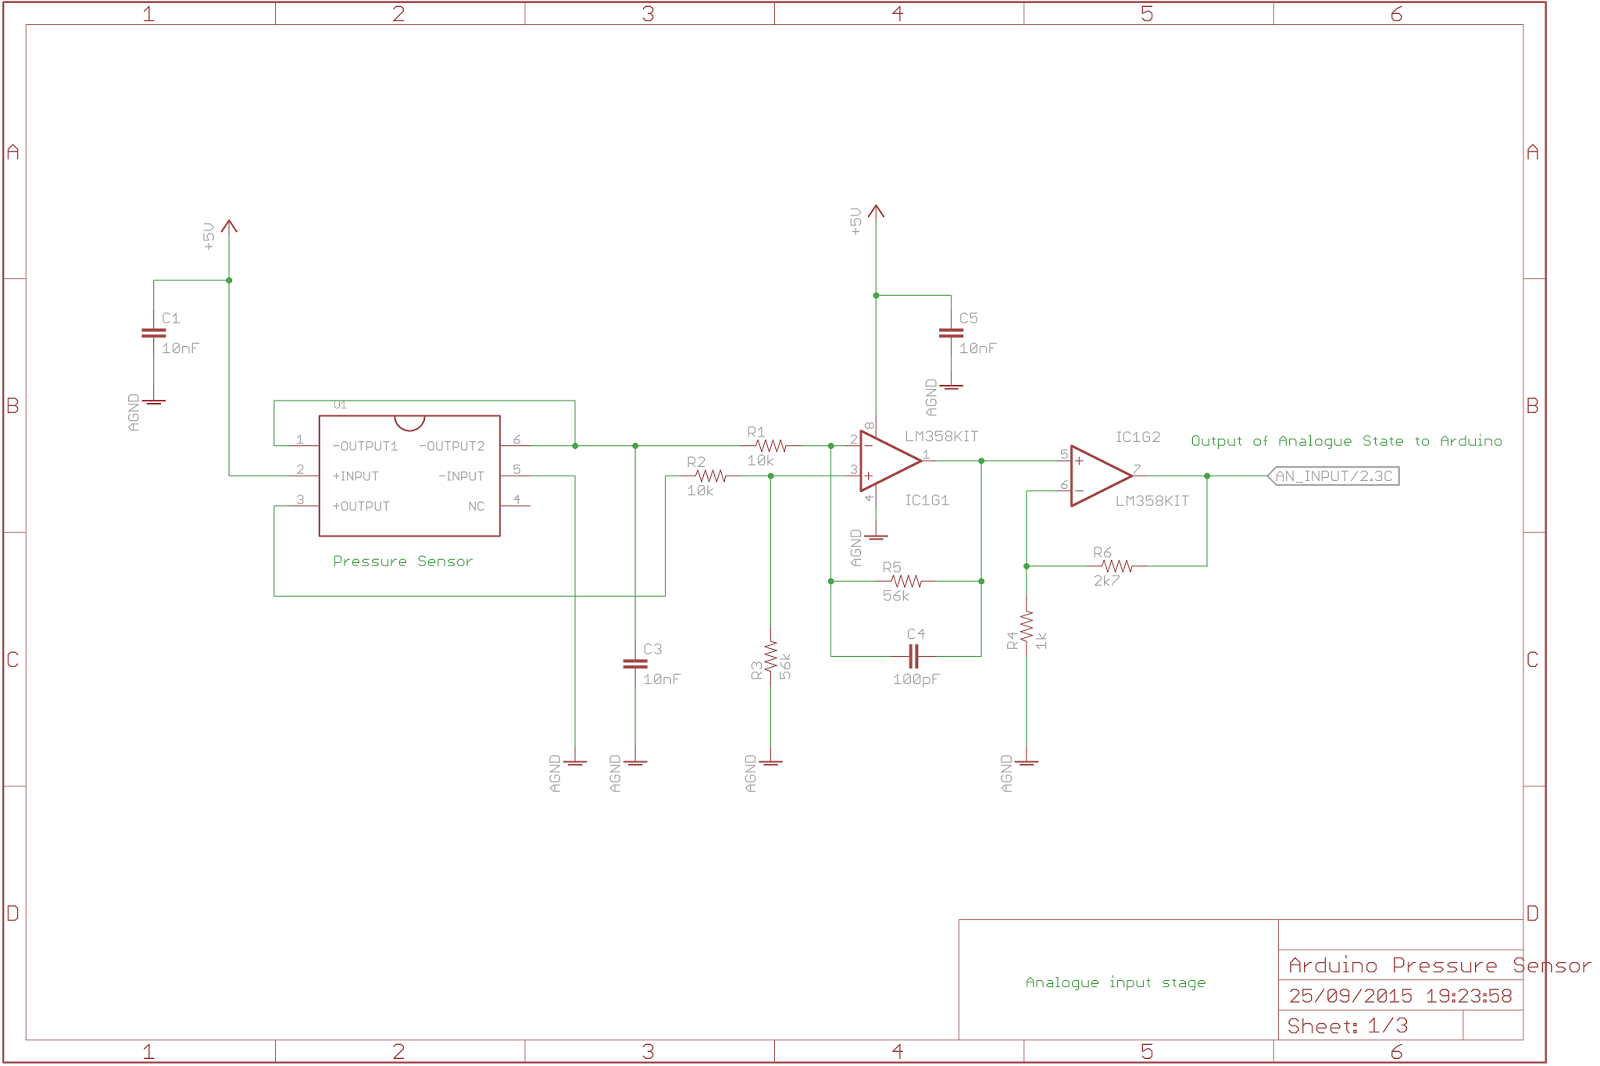 Difference Amplifier Hackspace Manchester Lm358 Pin Diagram And Datasheet Of The Circuit I Havent Discussed Rs485 Before But It Is A Fairly Common Serial Communications Protocol Here Full Schematic